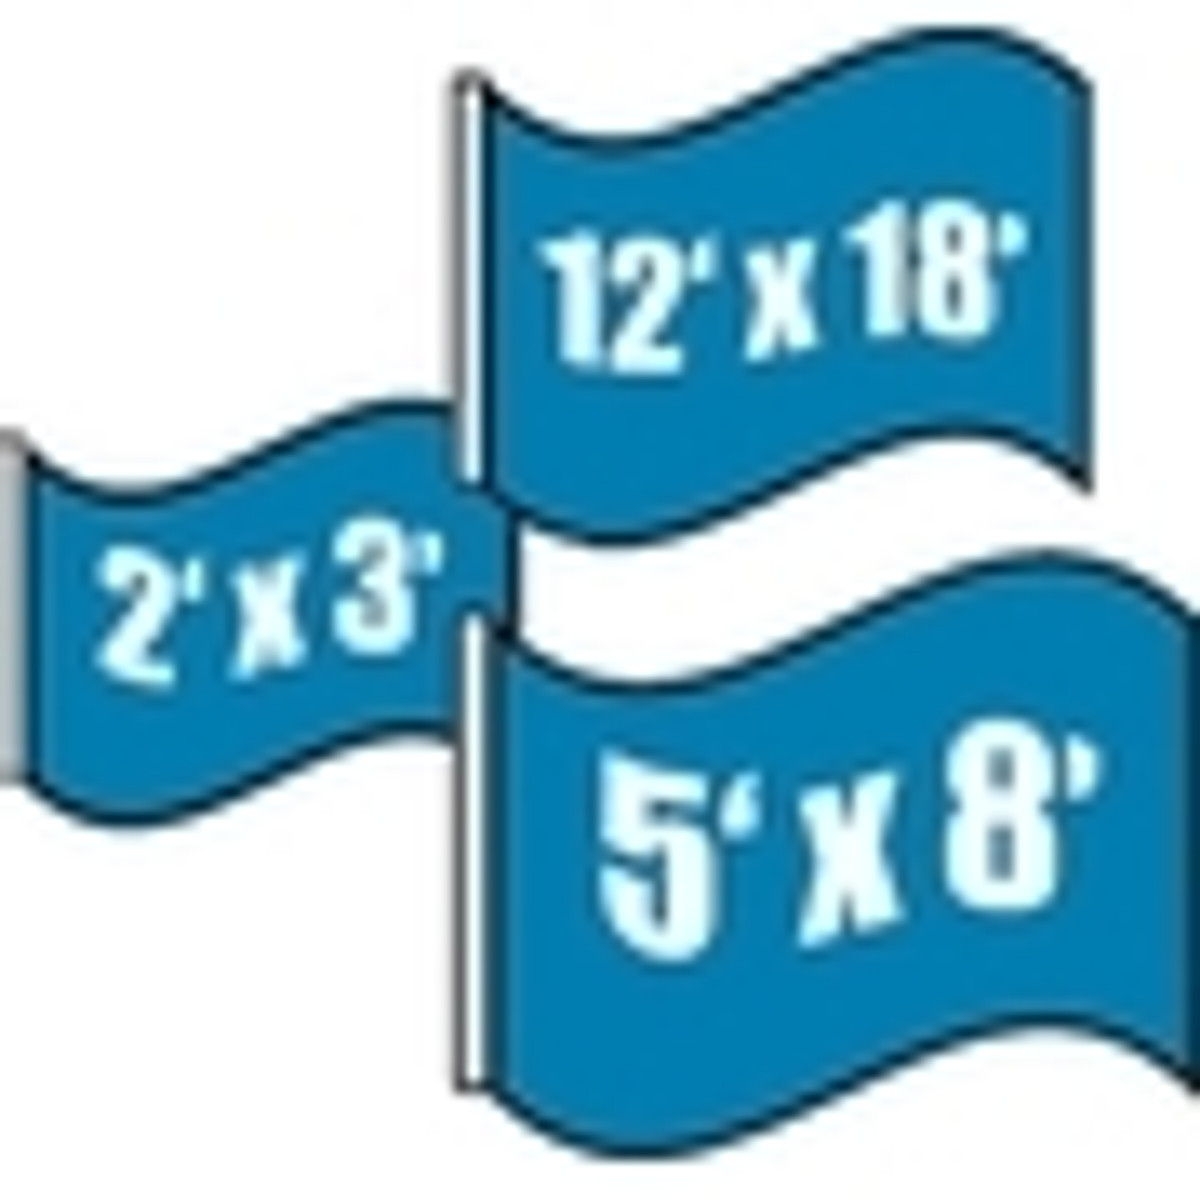 Military Flags Shop by Size